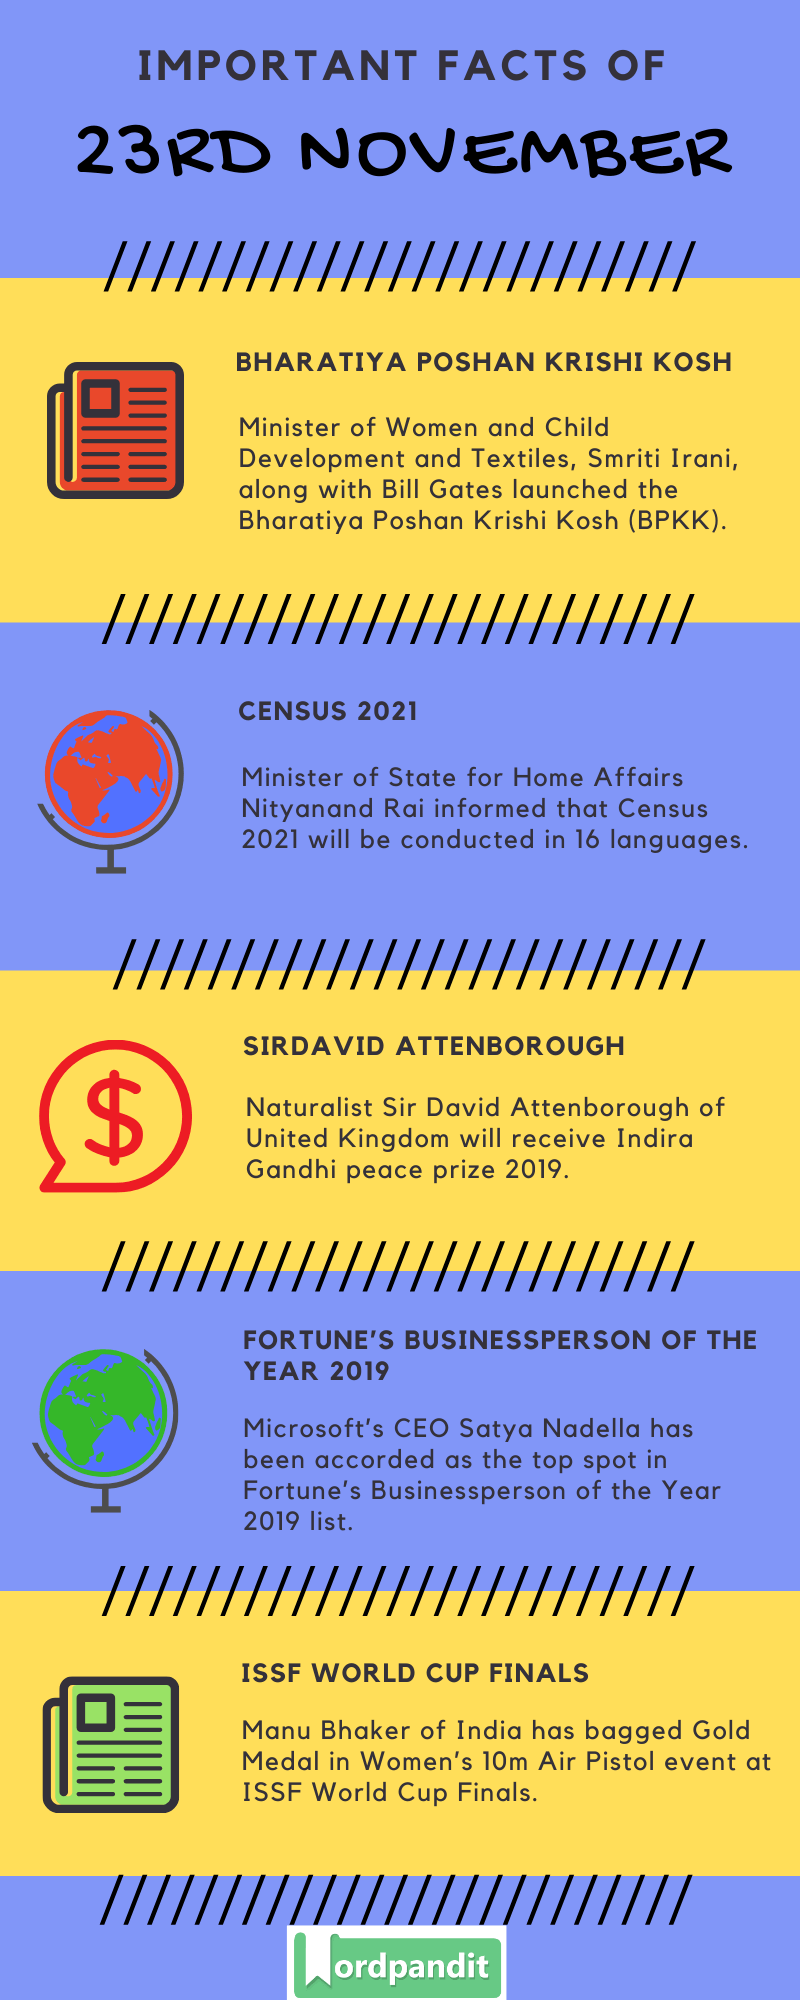 Daily Current Affairs 23 November 2019 Current Affairs Quiz 23 November 2019 Current Affairs Infographic